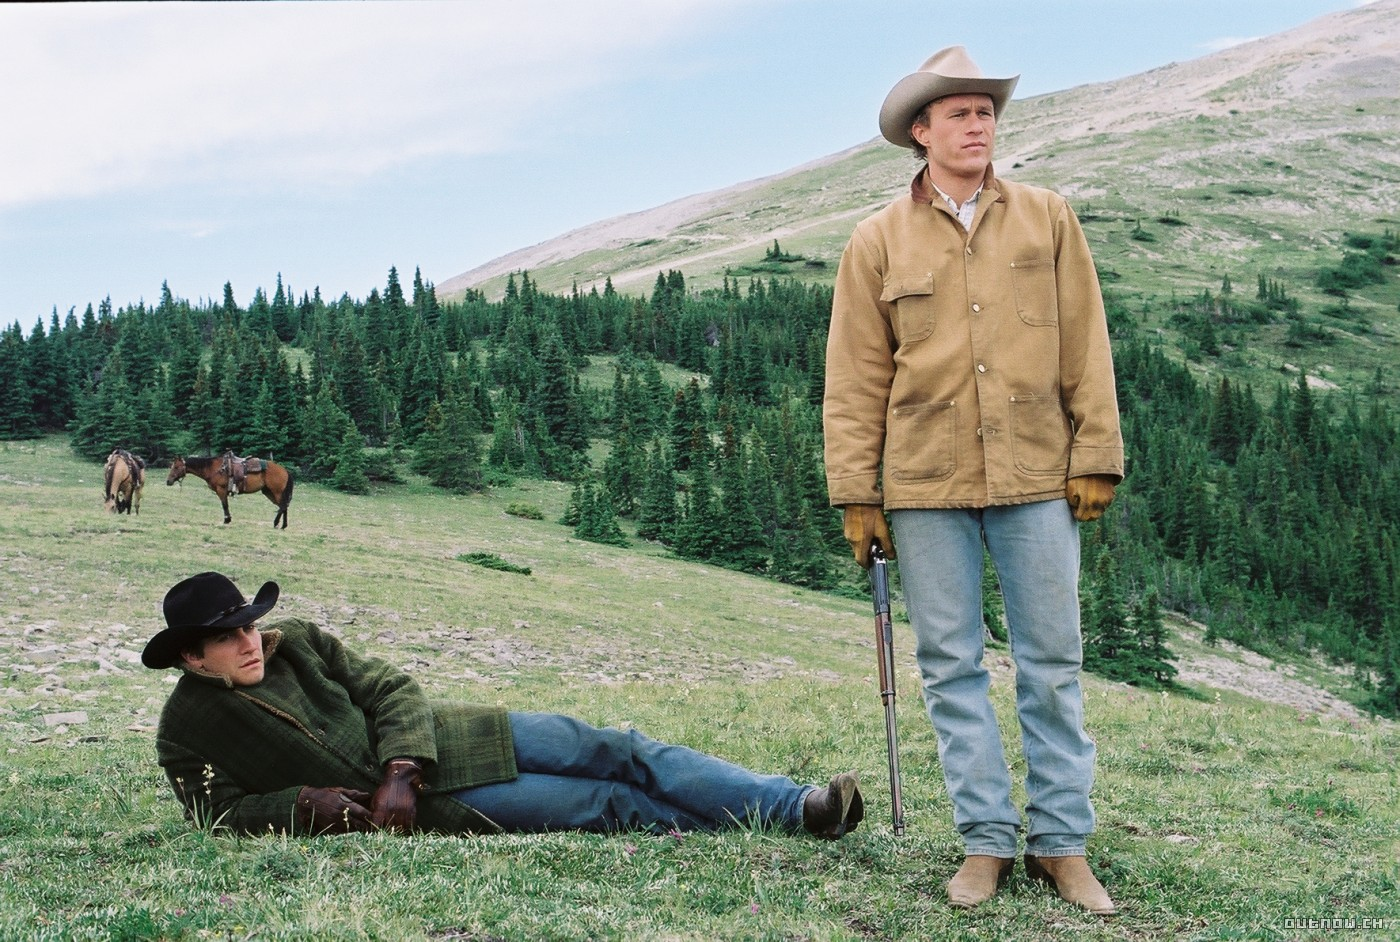 i segreti di Brokeback Mountain di Ang Lee